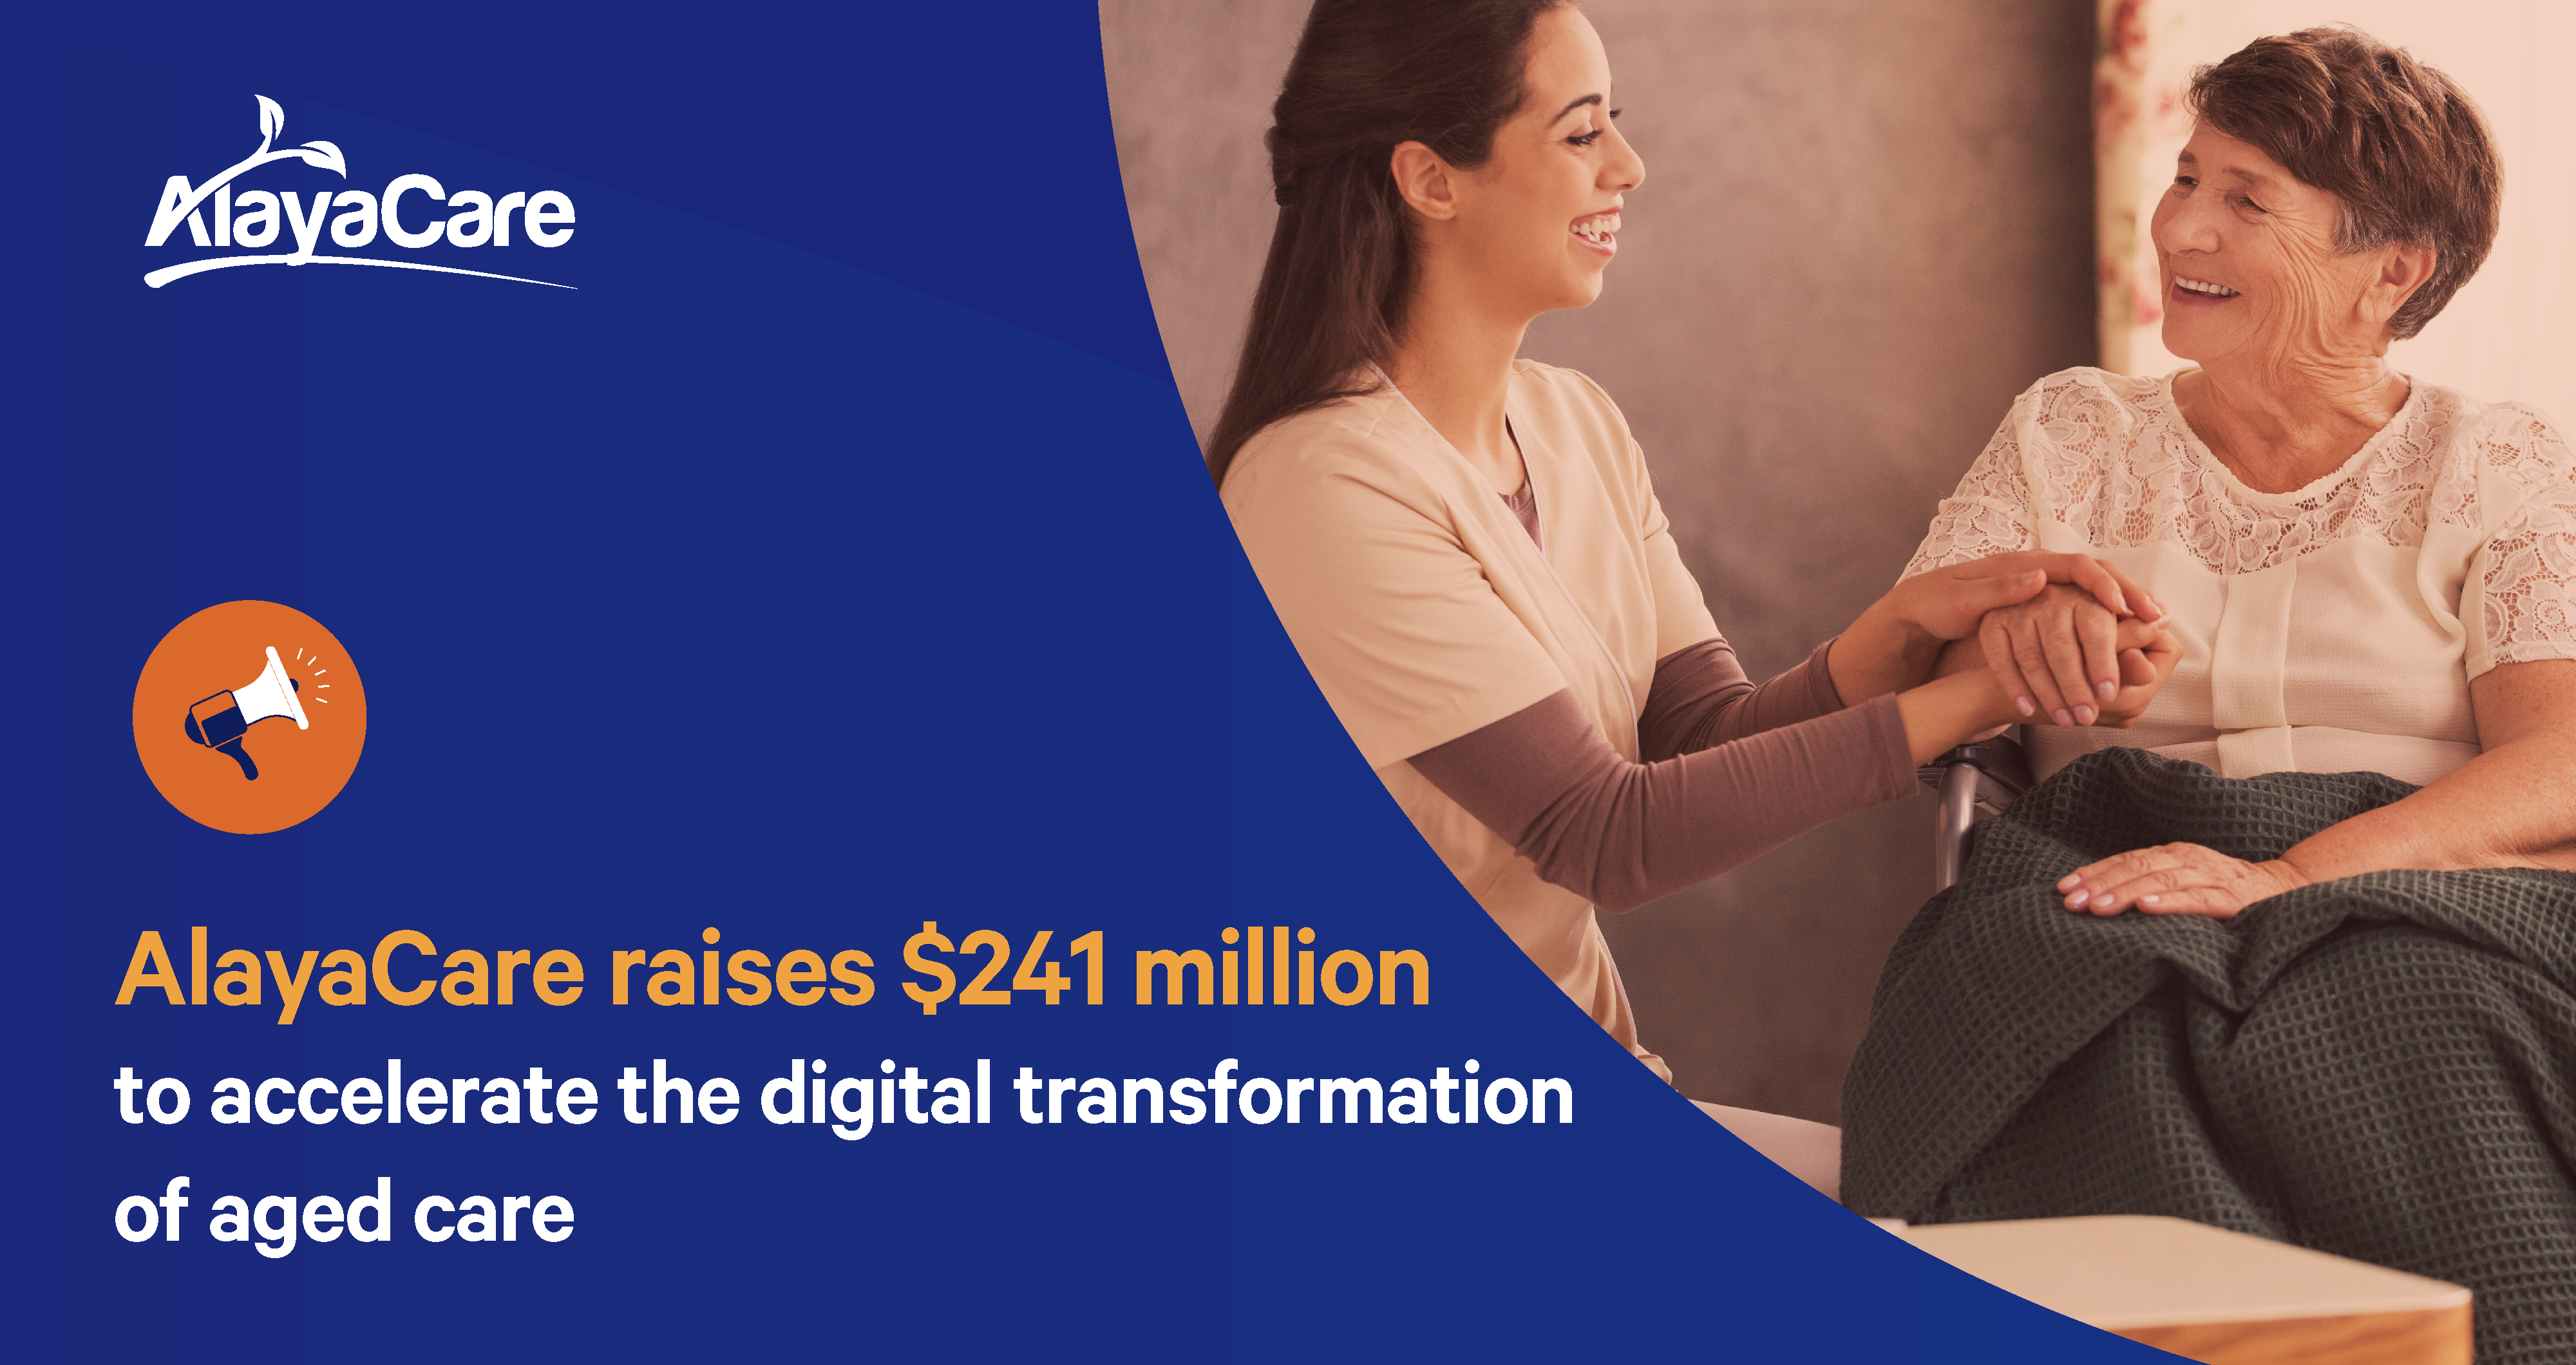 AlayaCare raises $241 million to accelerate the digital transformation of aged care